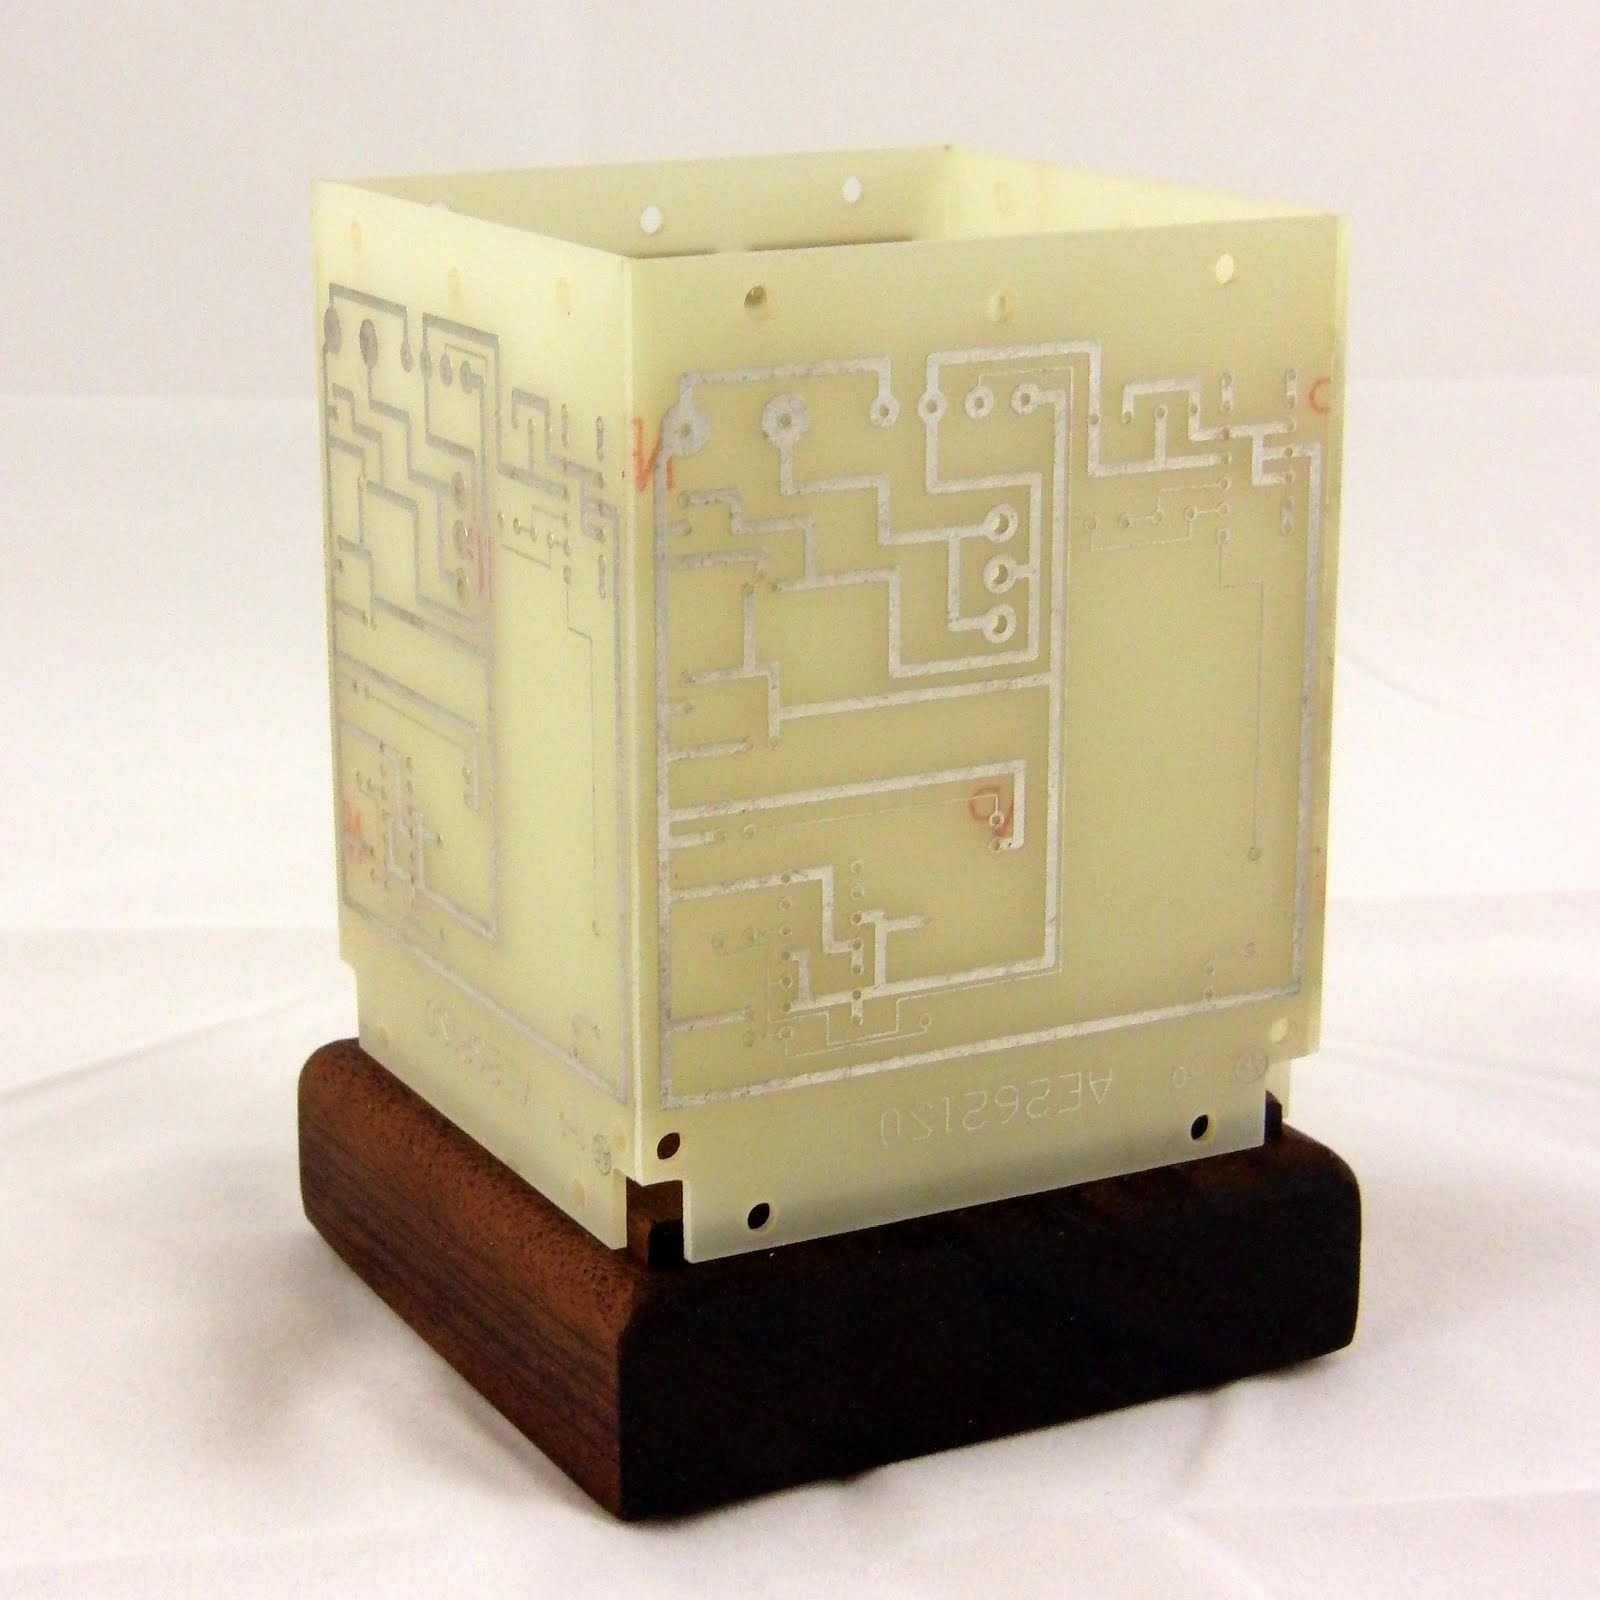 Chris Holmes Constructions Circuit Board On Vintage Cigar Box Candle Holder